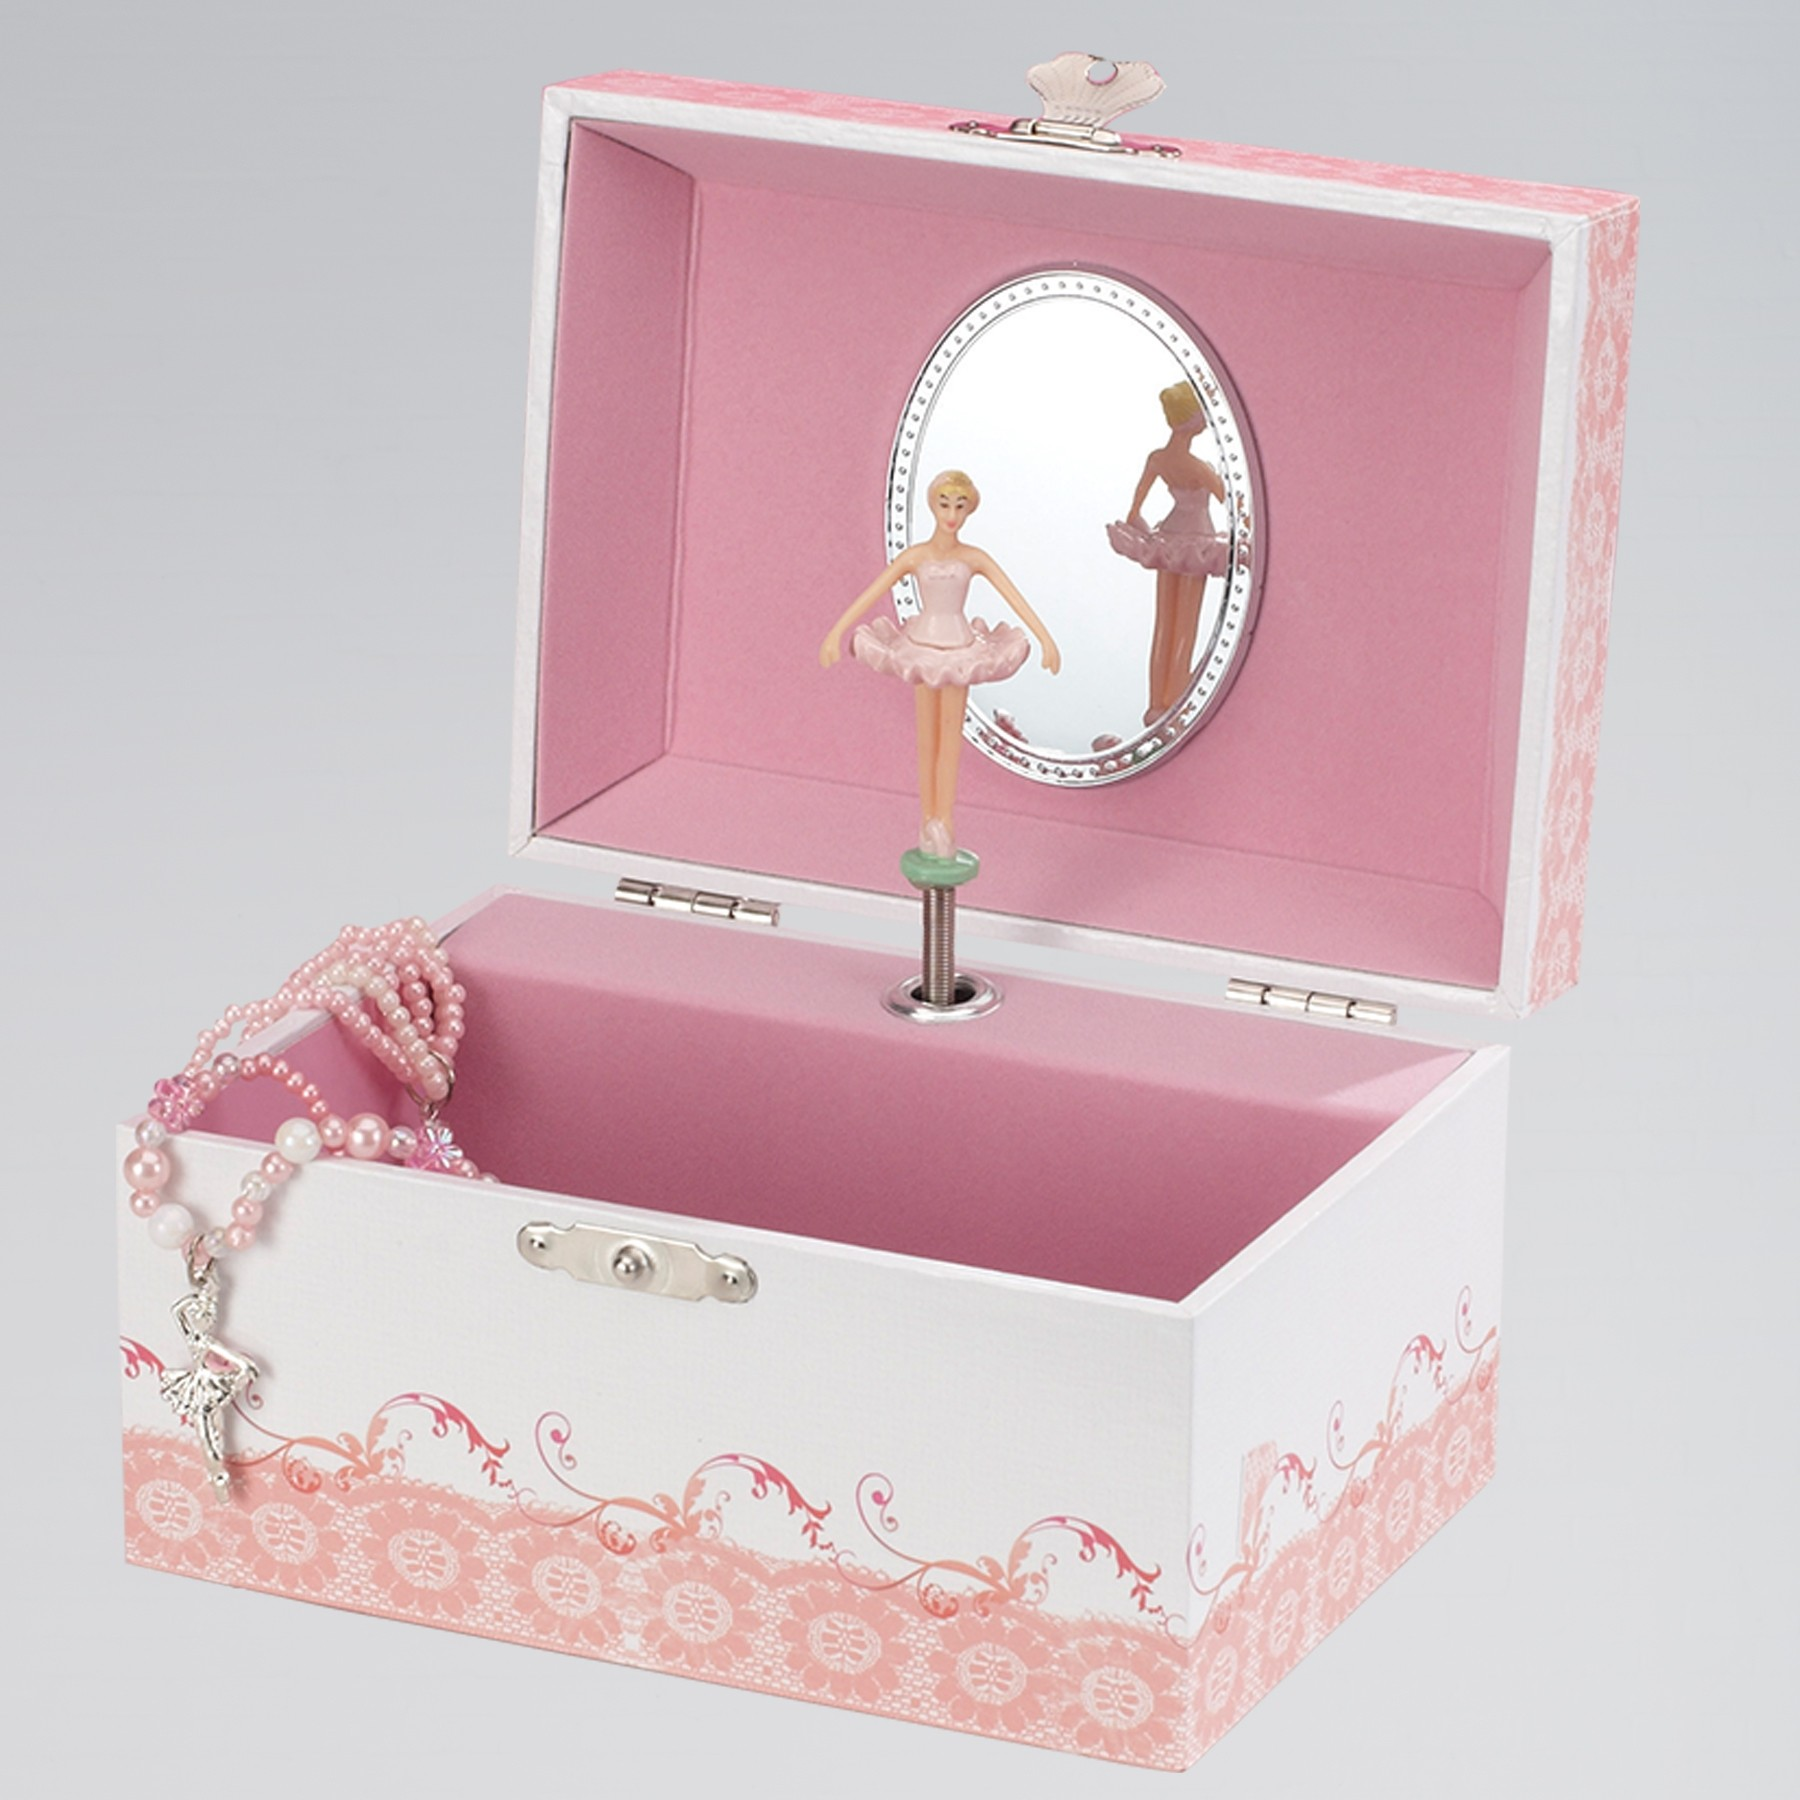 Dulcie Ballet Shoes Musical Jewellery Box